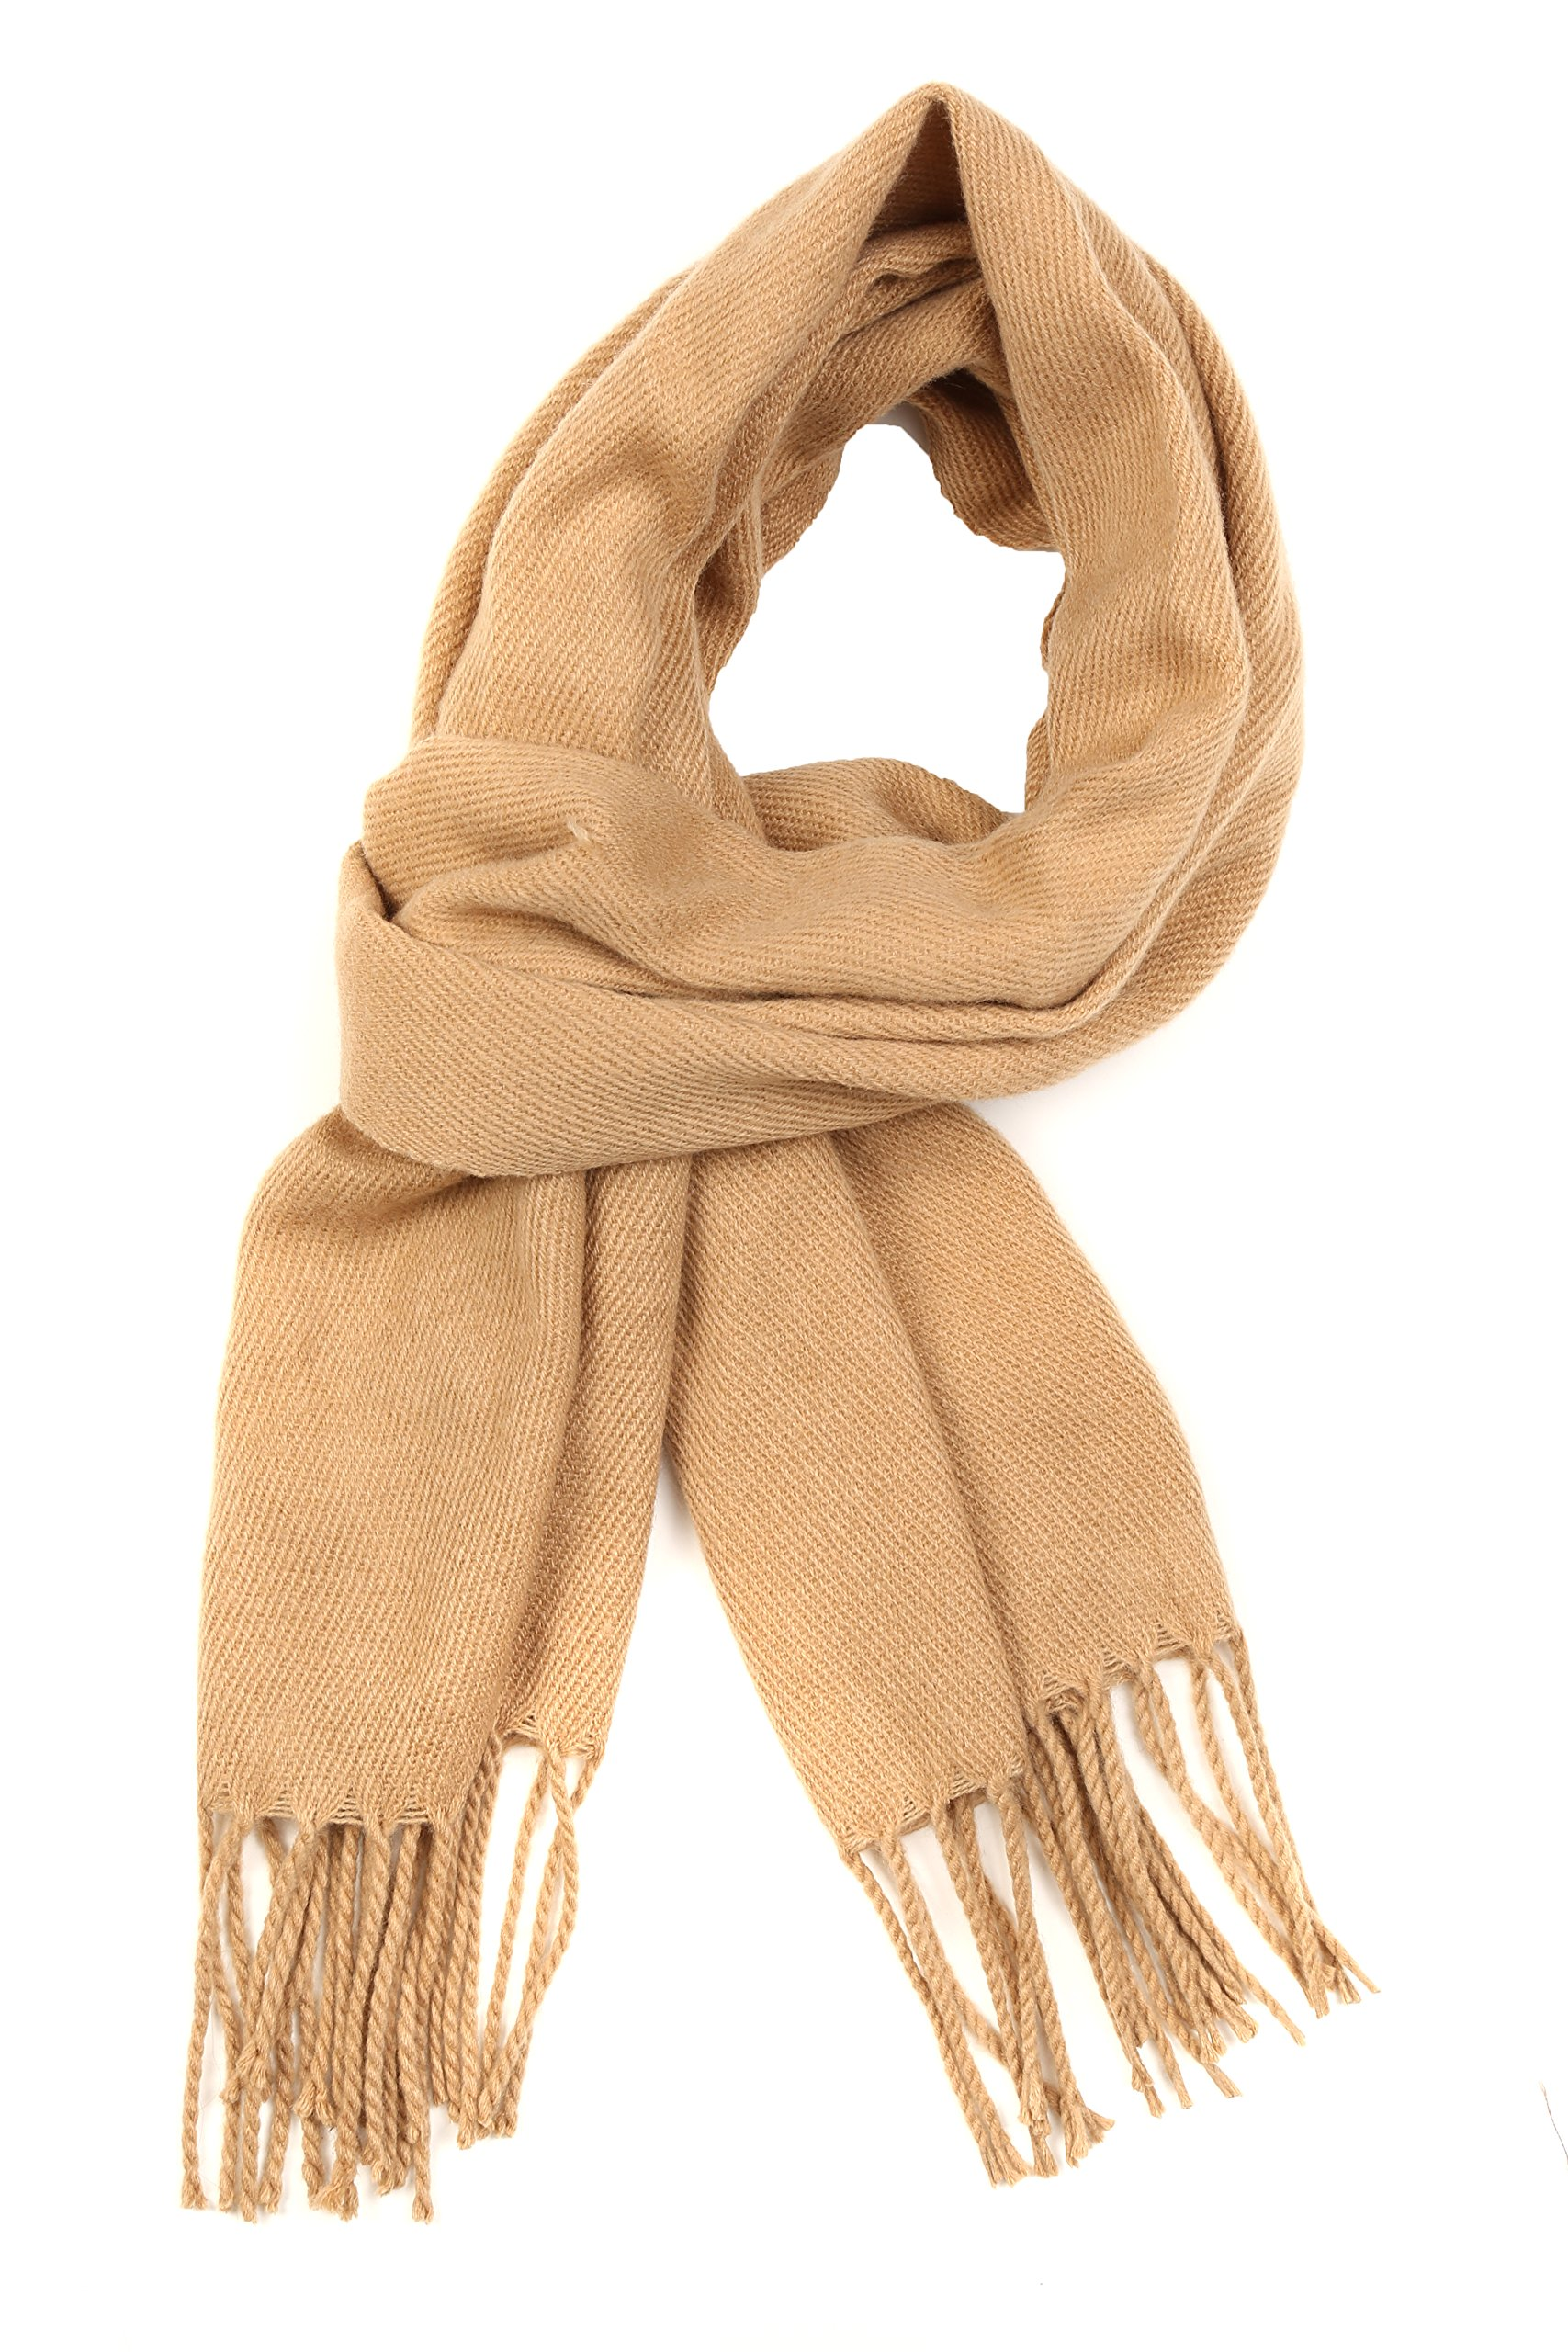 Sakkas 1590 - Booker Cashmere Feel Solid Colored Unisex Winter Scarf With Fringe - Camel - OS